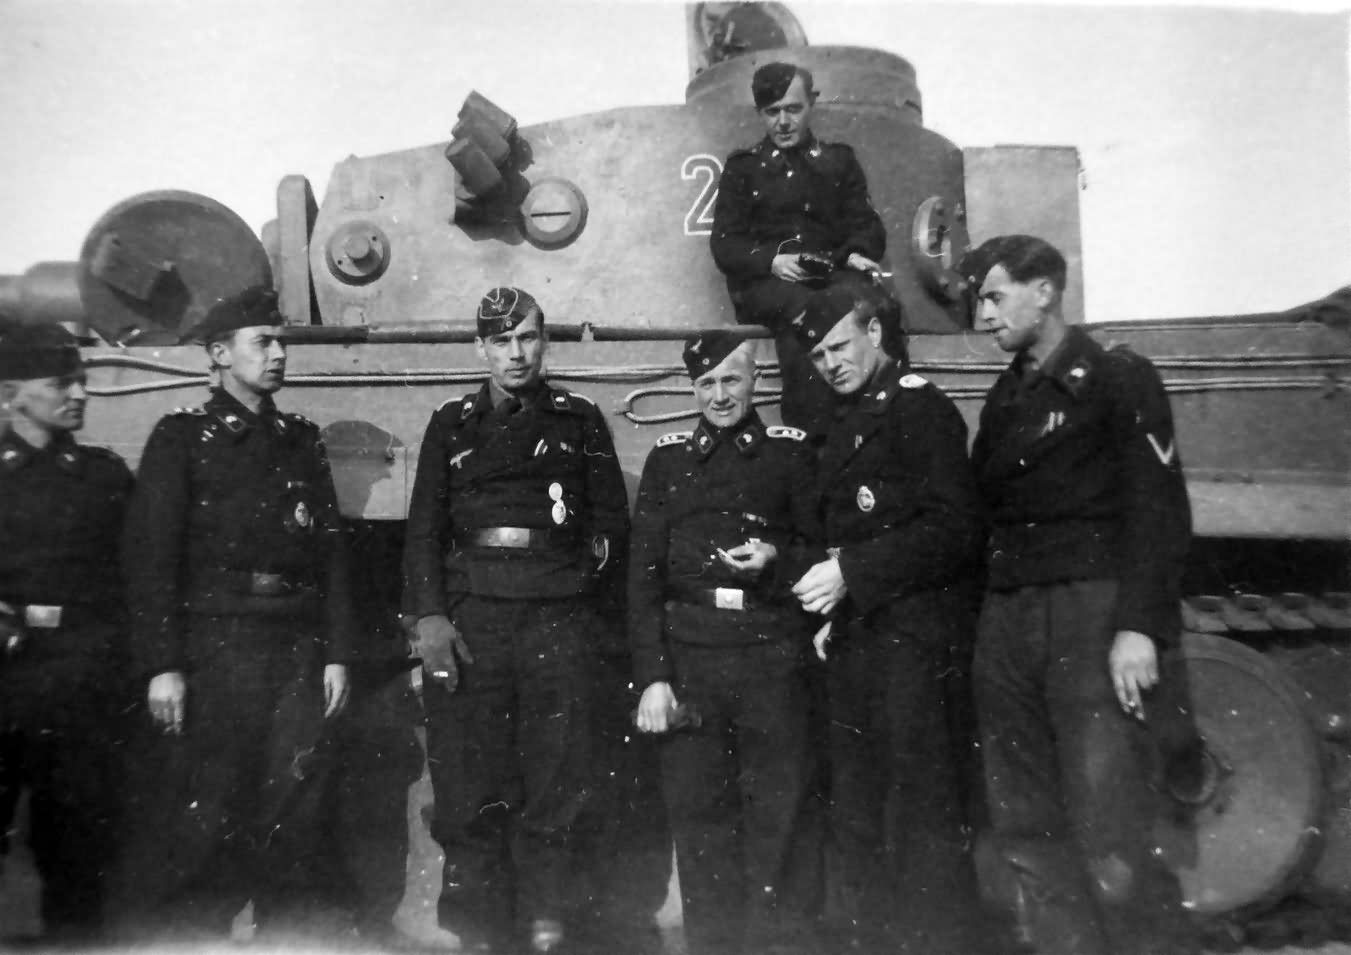 Early Tiger tank and crew of the schwere panzer abteilung 505